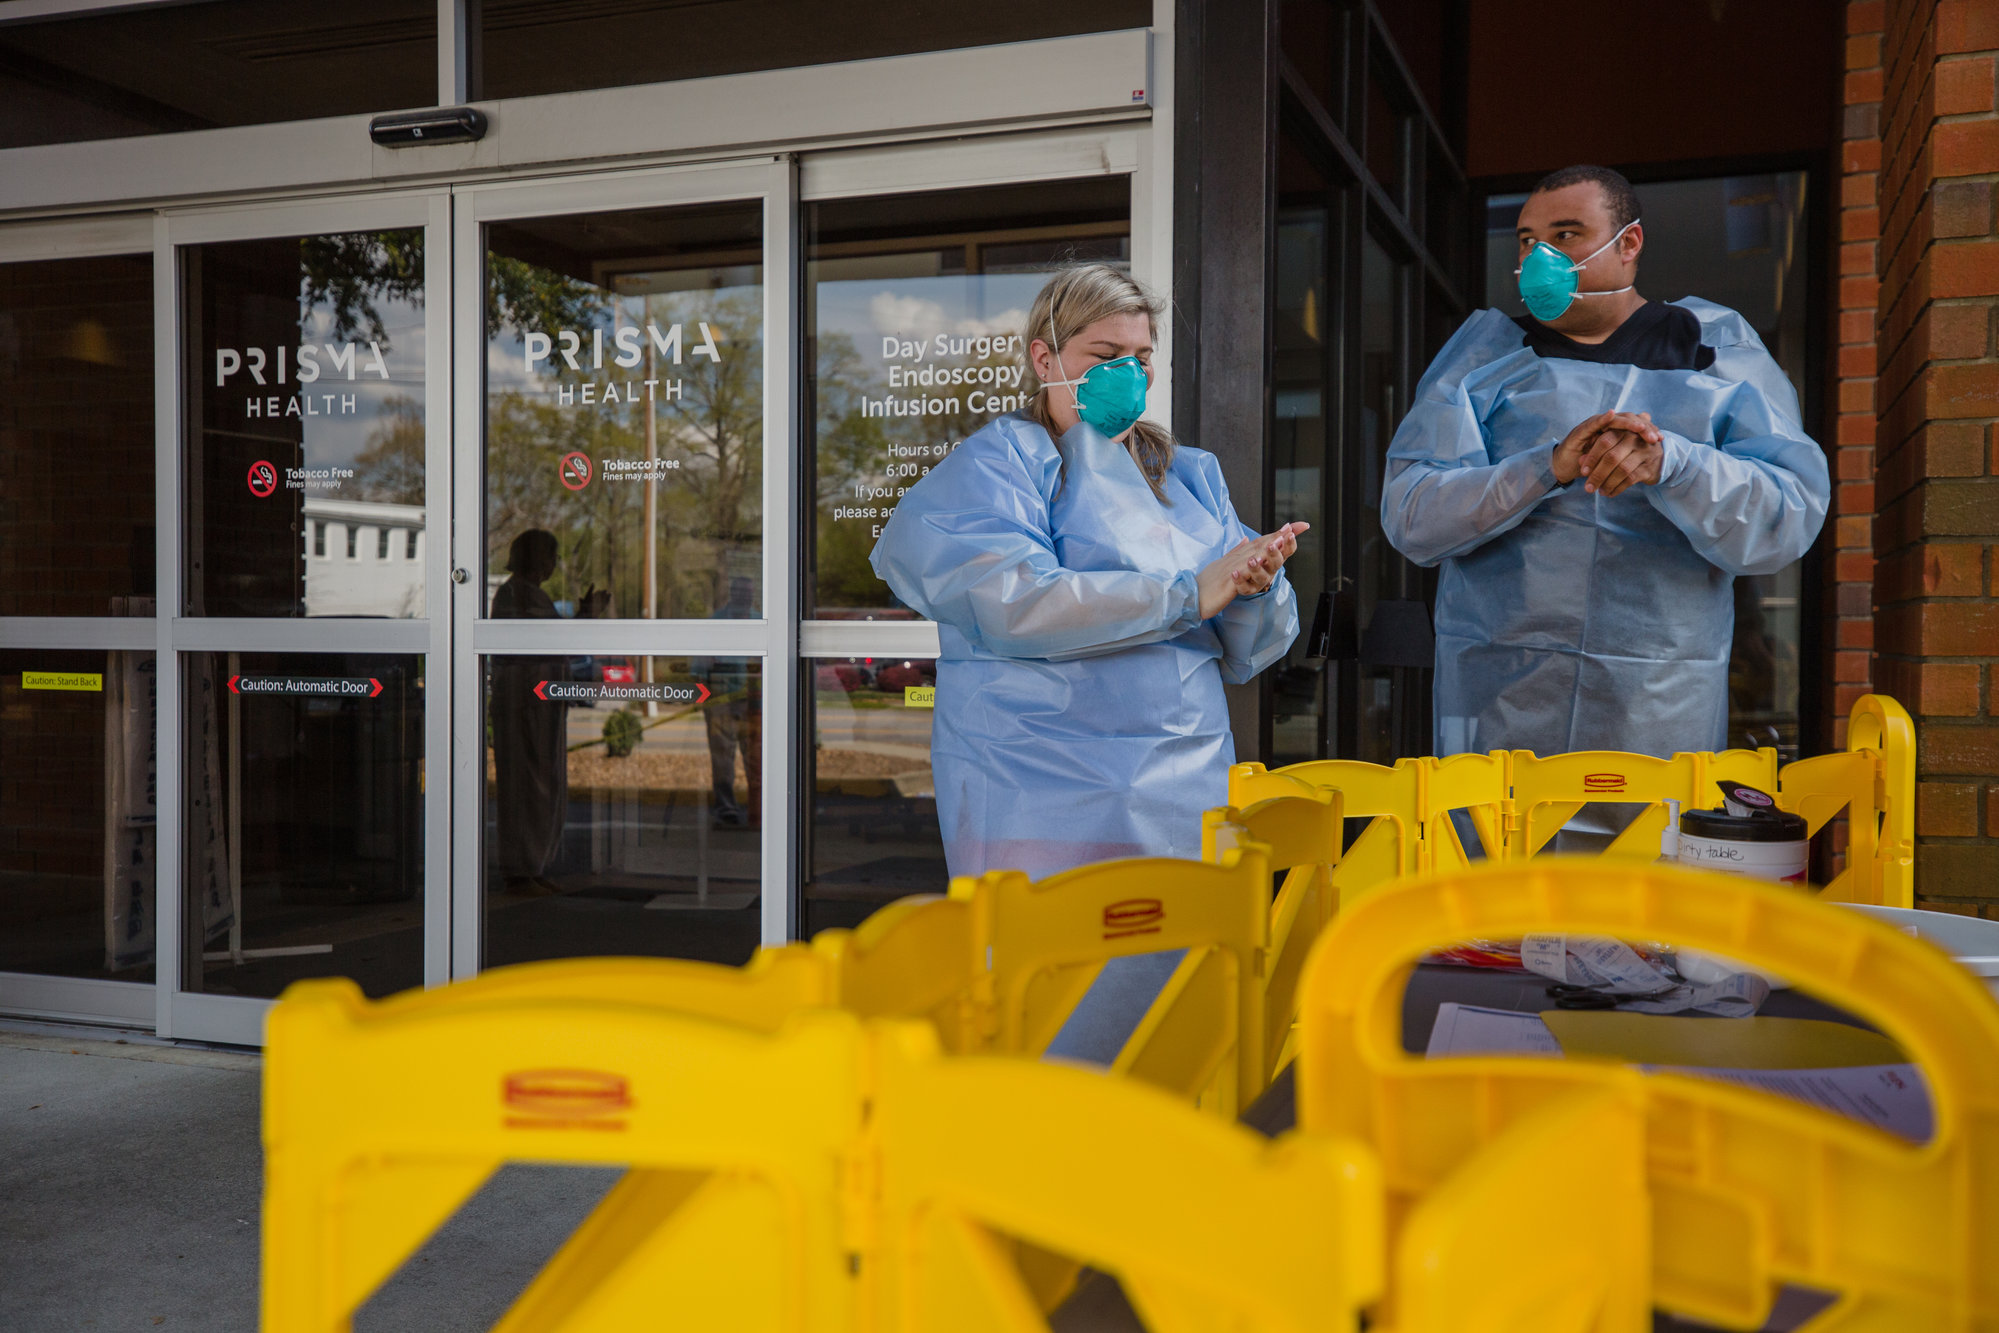 Chloe Peters, a RN at Prsima Health Toumey Hospital, and Kyle Sanders, a BLS specialist with Prisma, wash up after conducting and collecting a drive through COVID-19 test in Sumter on Thursday, March 19.